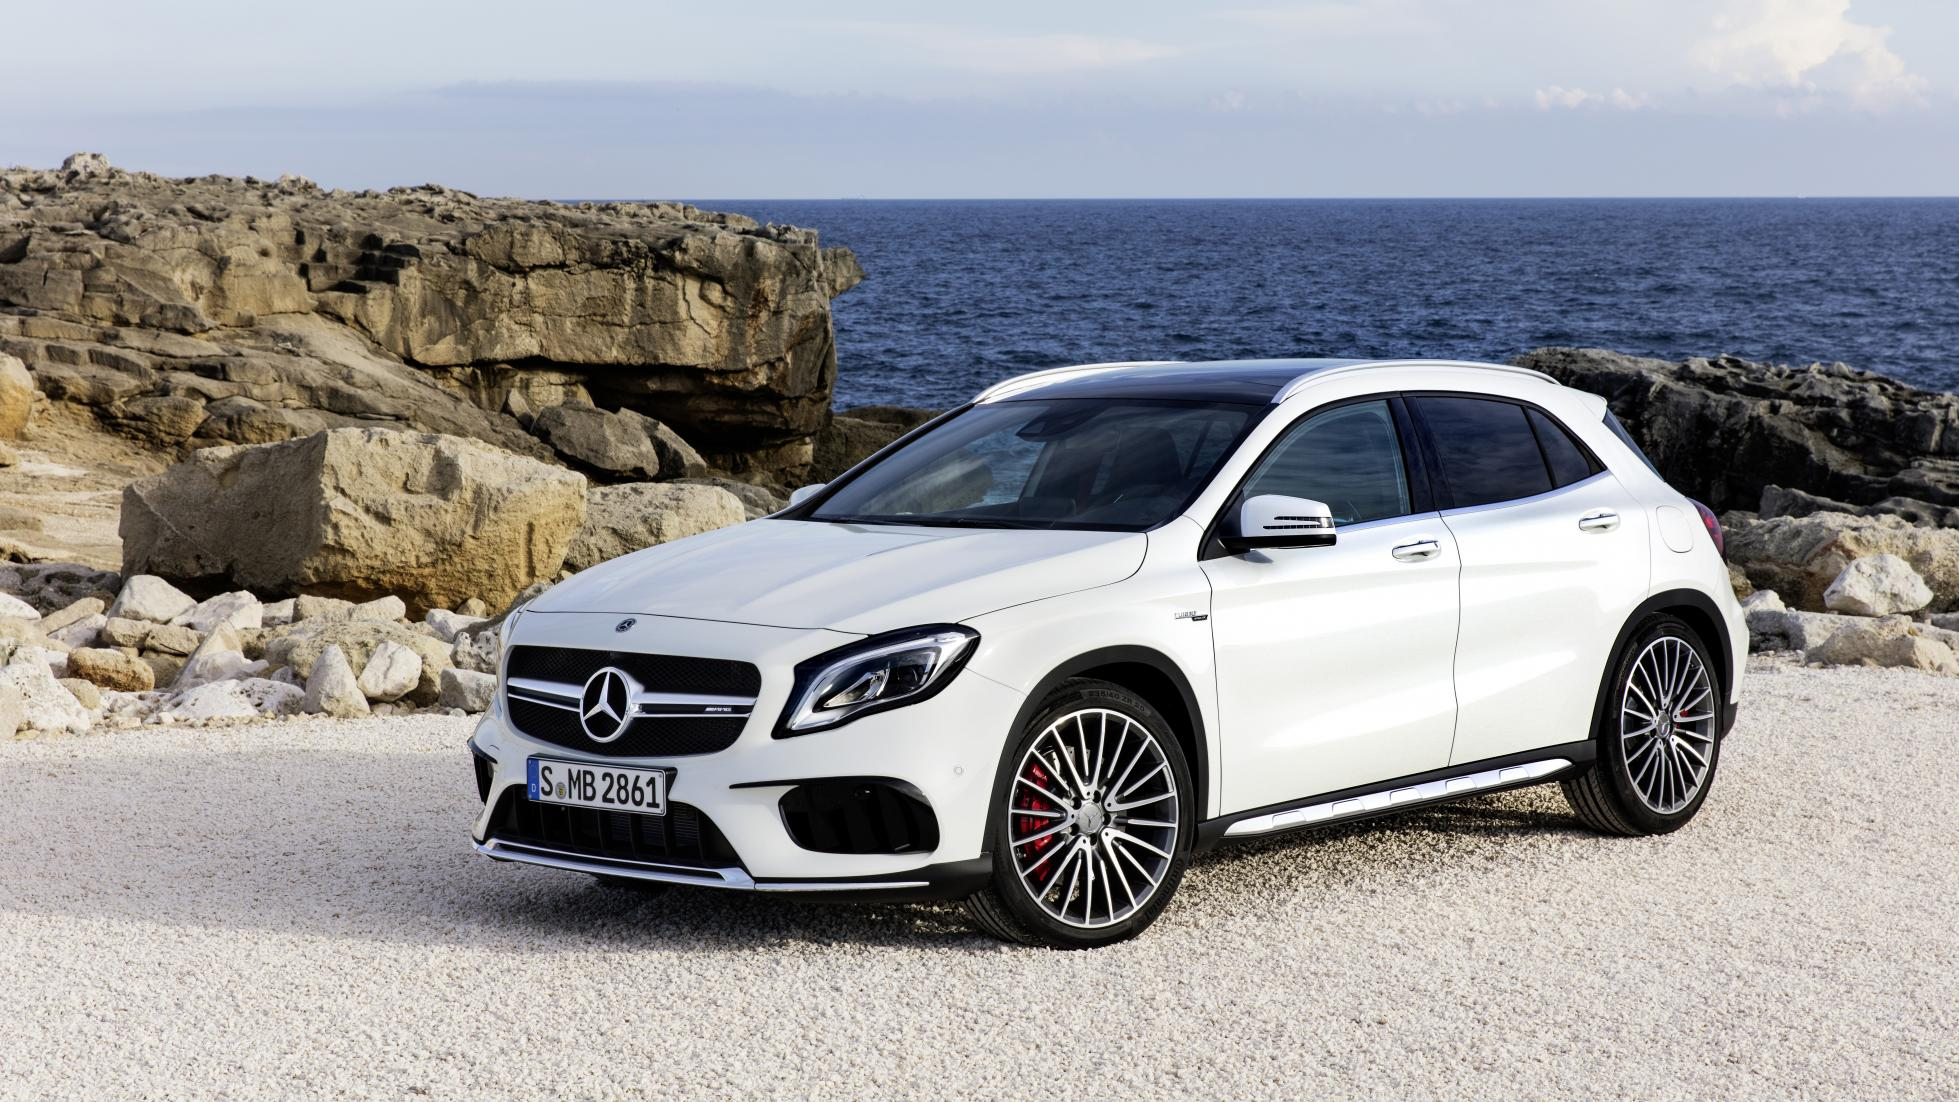 mercedes benz gla 2018 cambios muy ligeros que lo mantienen fresco. Black Bedroom Furniture Sets. Home Design Ideas